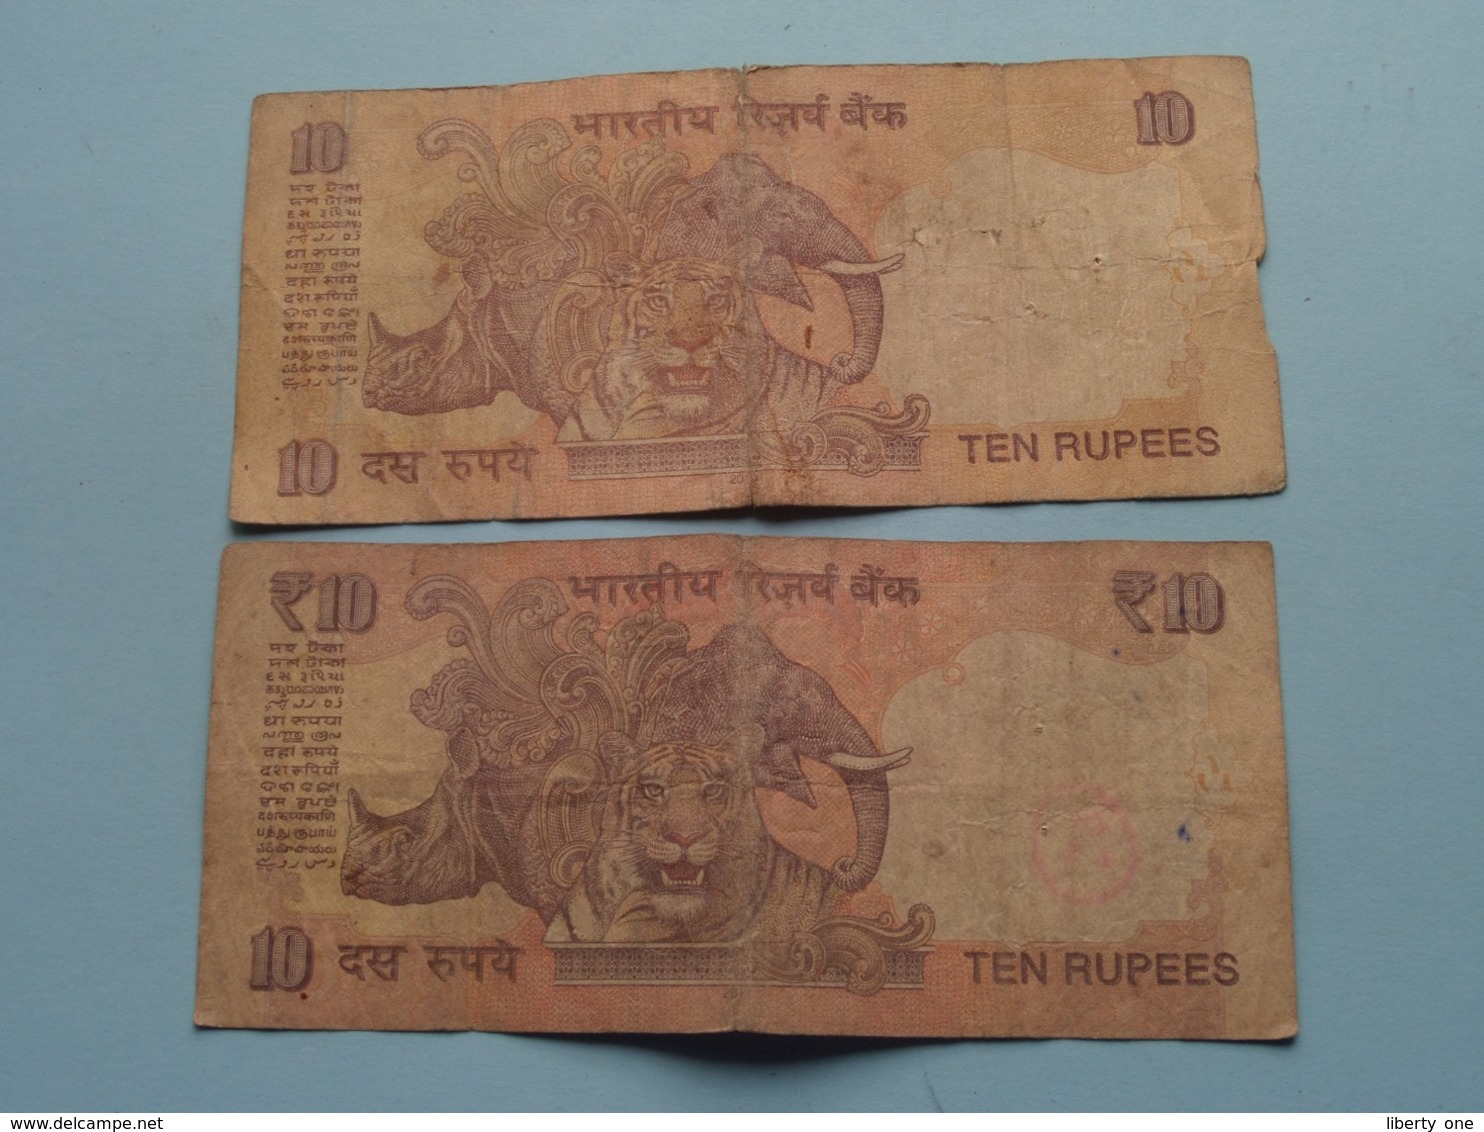 10 ( Ten ) RUPEES : 66E 502270 & 57H 576654 ( Reserve Bank Of India ) ! - Inde